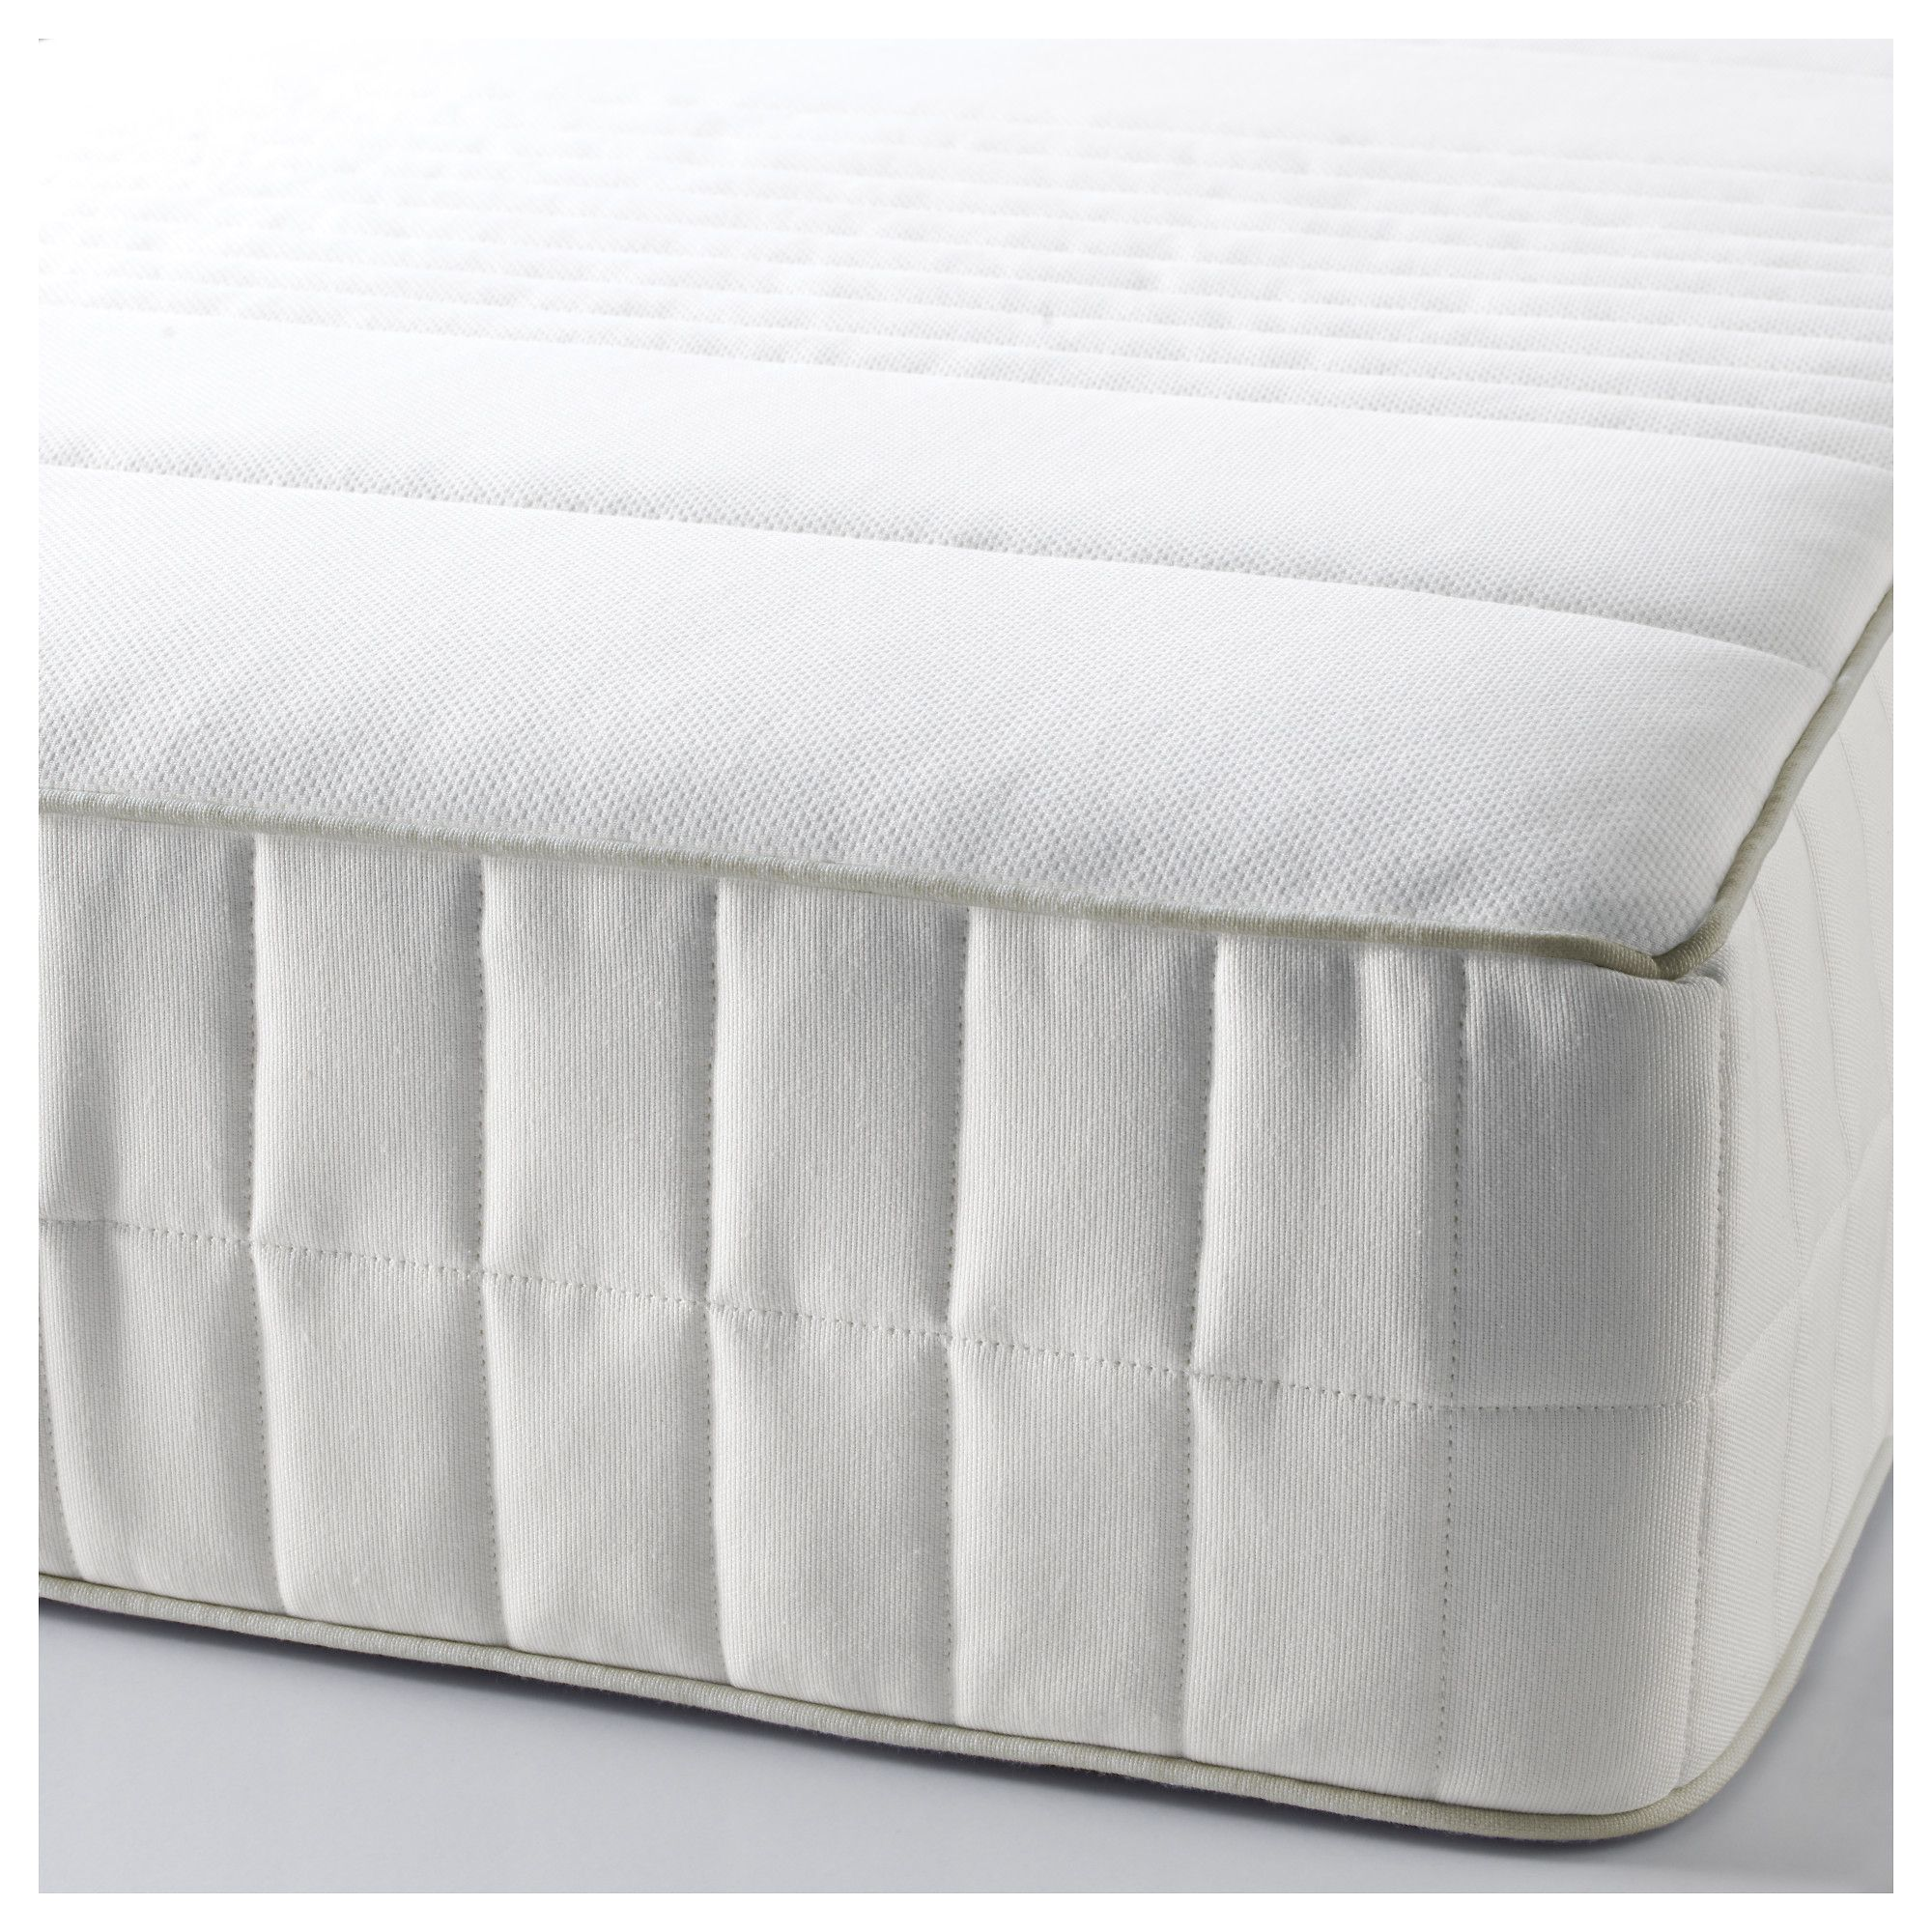 organic usa organiclatex us natura home reviews oreillernatura mattress pillow latex